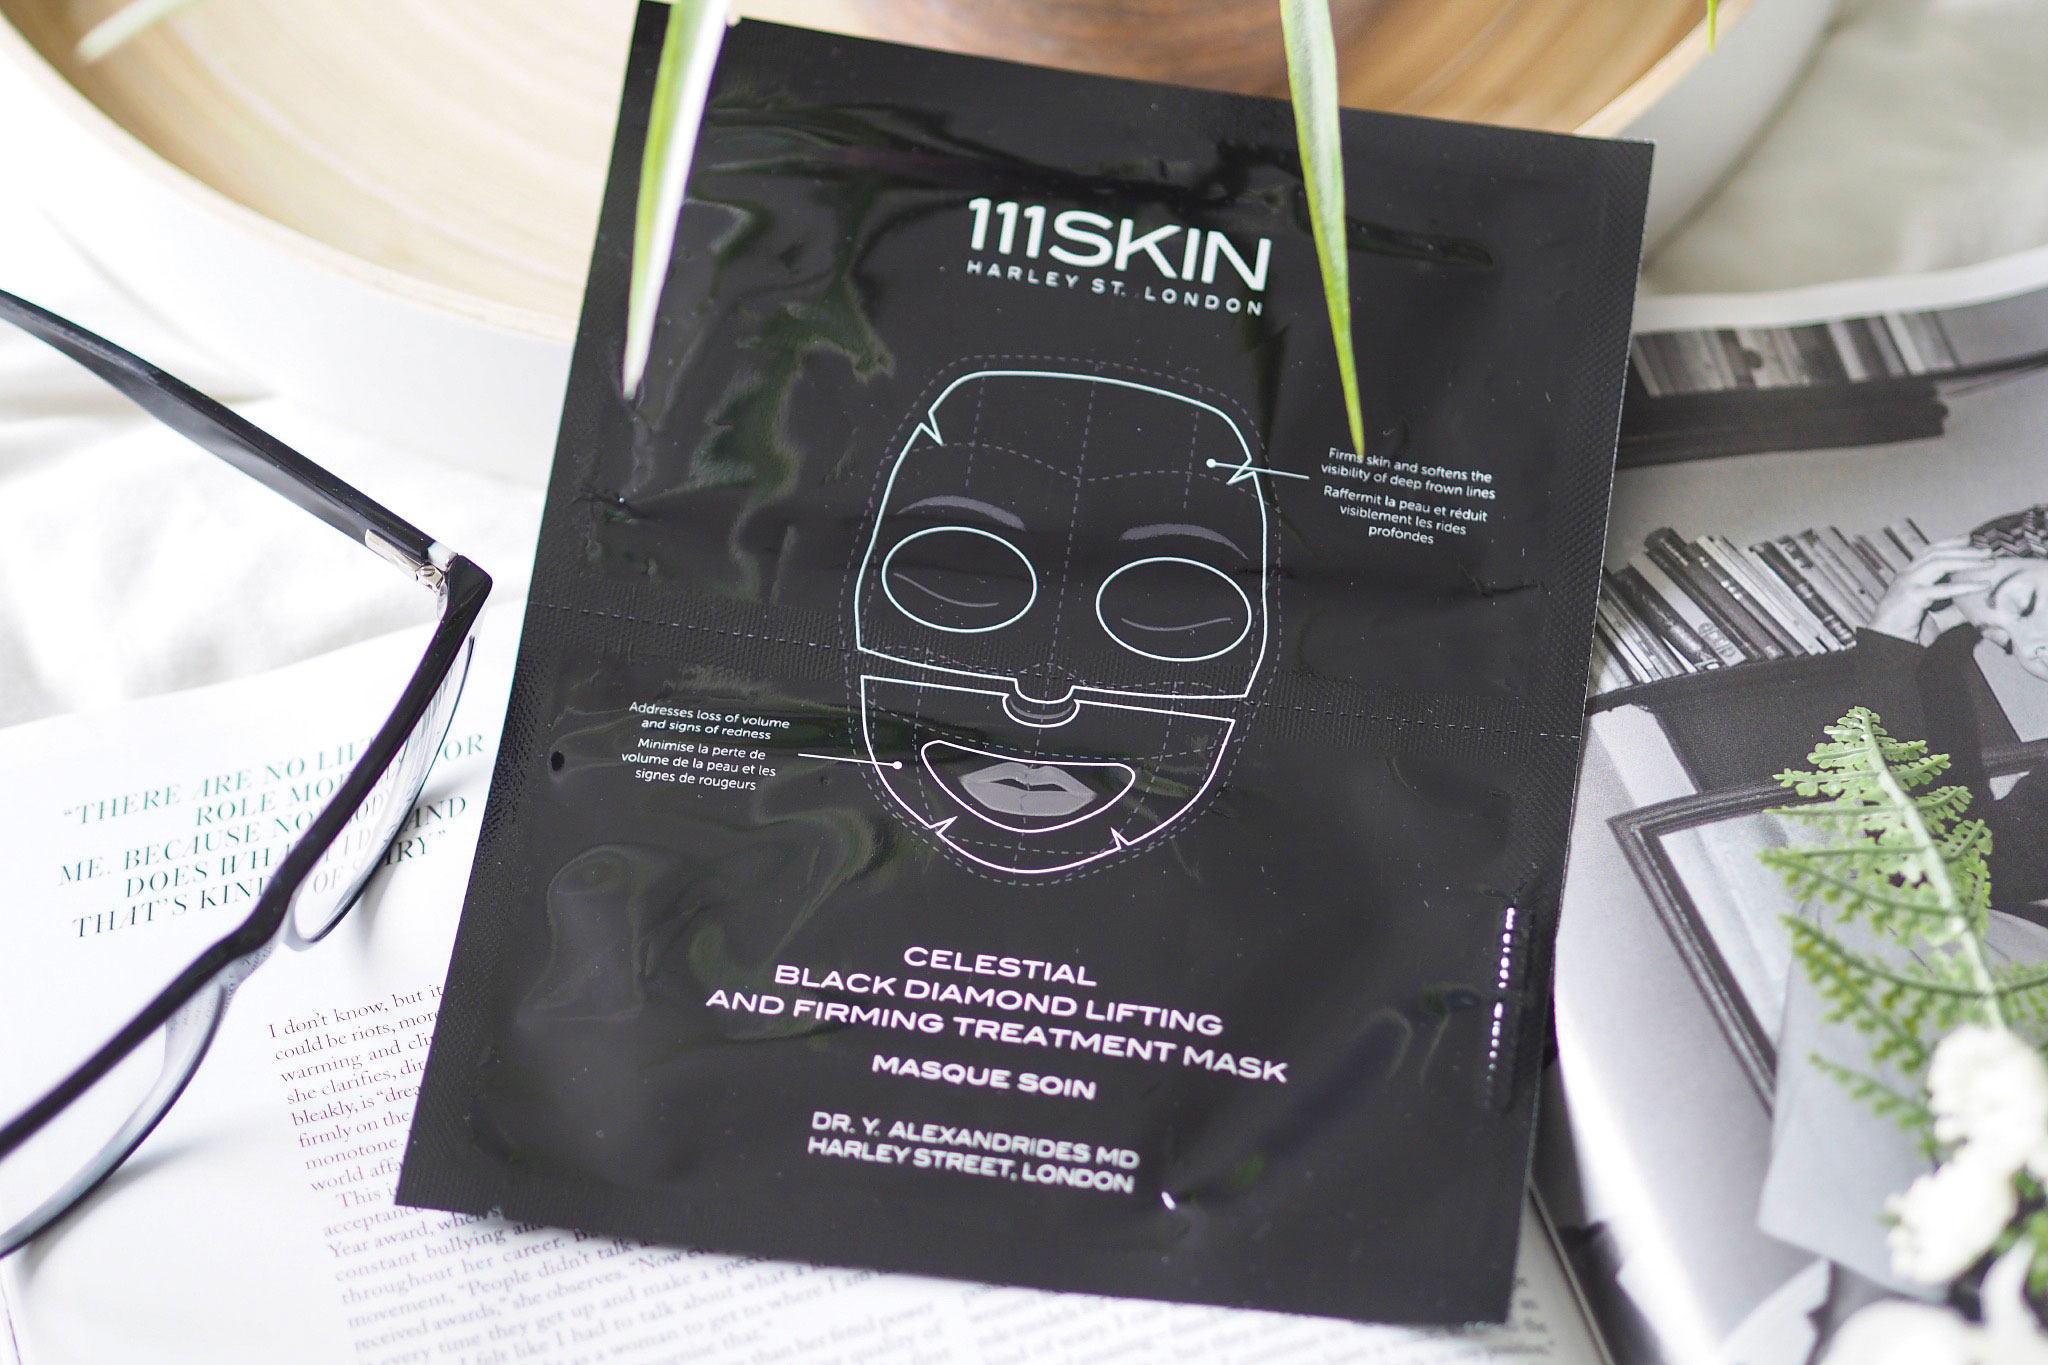 111Skin Celestial Black Diamond Lifting & Firming Mask Review